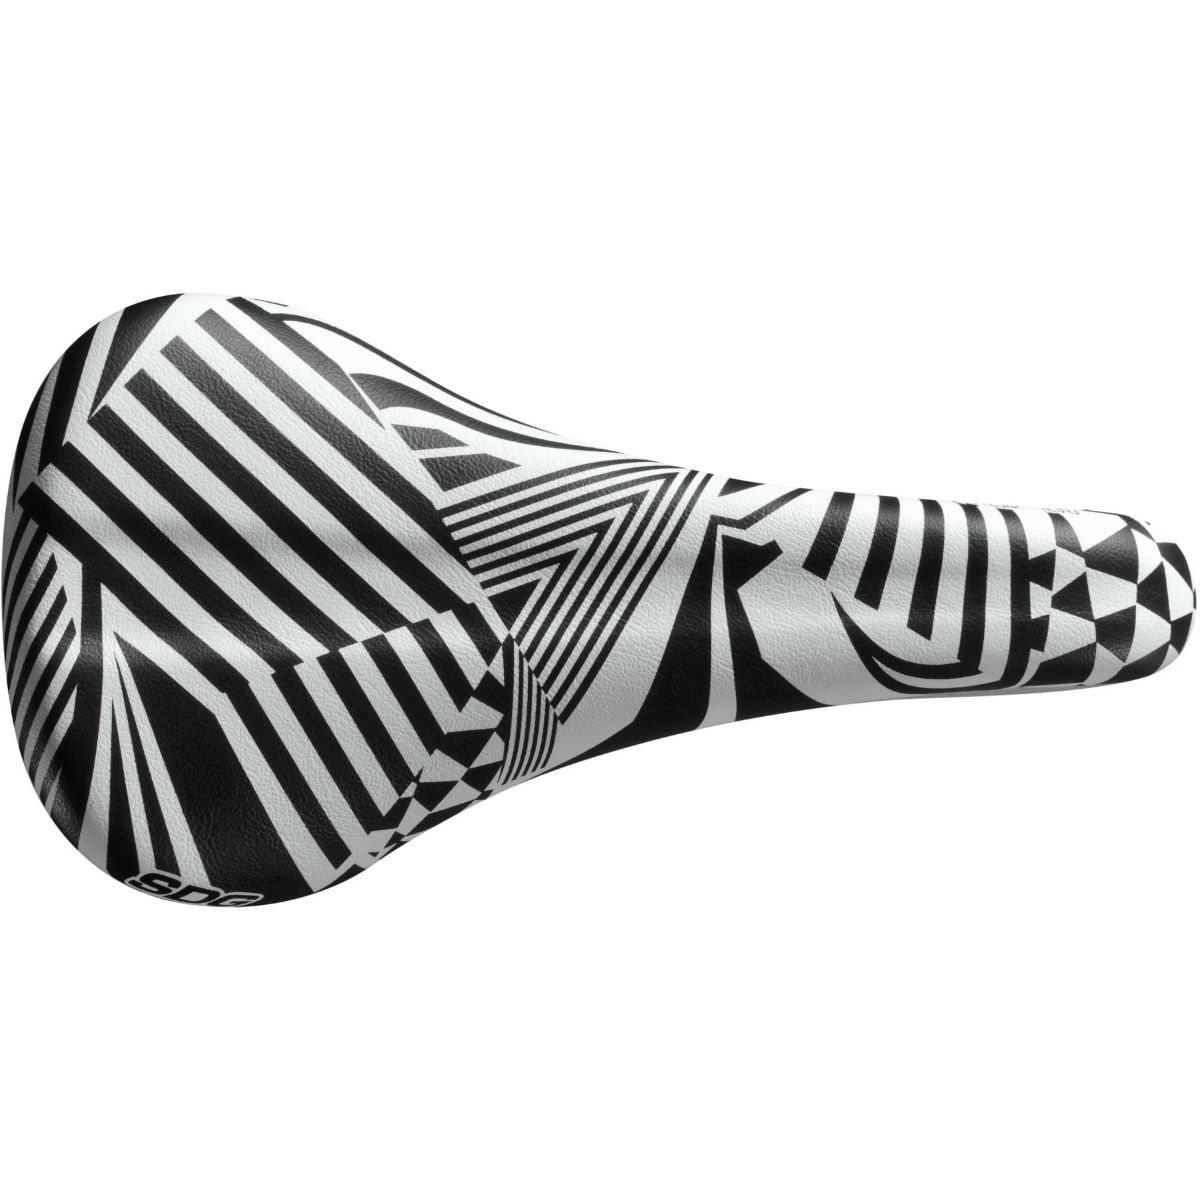 Selle SDG Bel Air 2.0 (gamme Dazzle) - W 140mm Noir/Blanc Selles performance